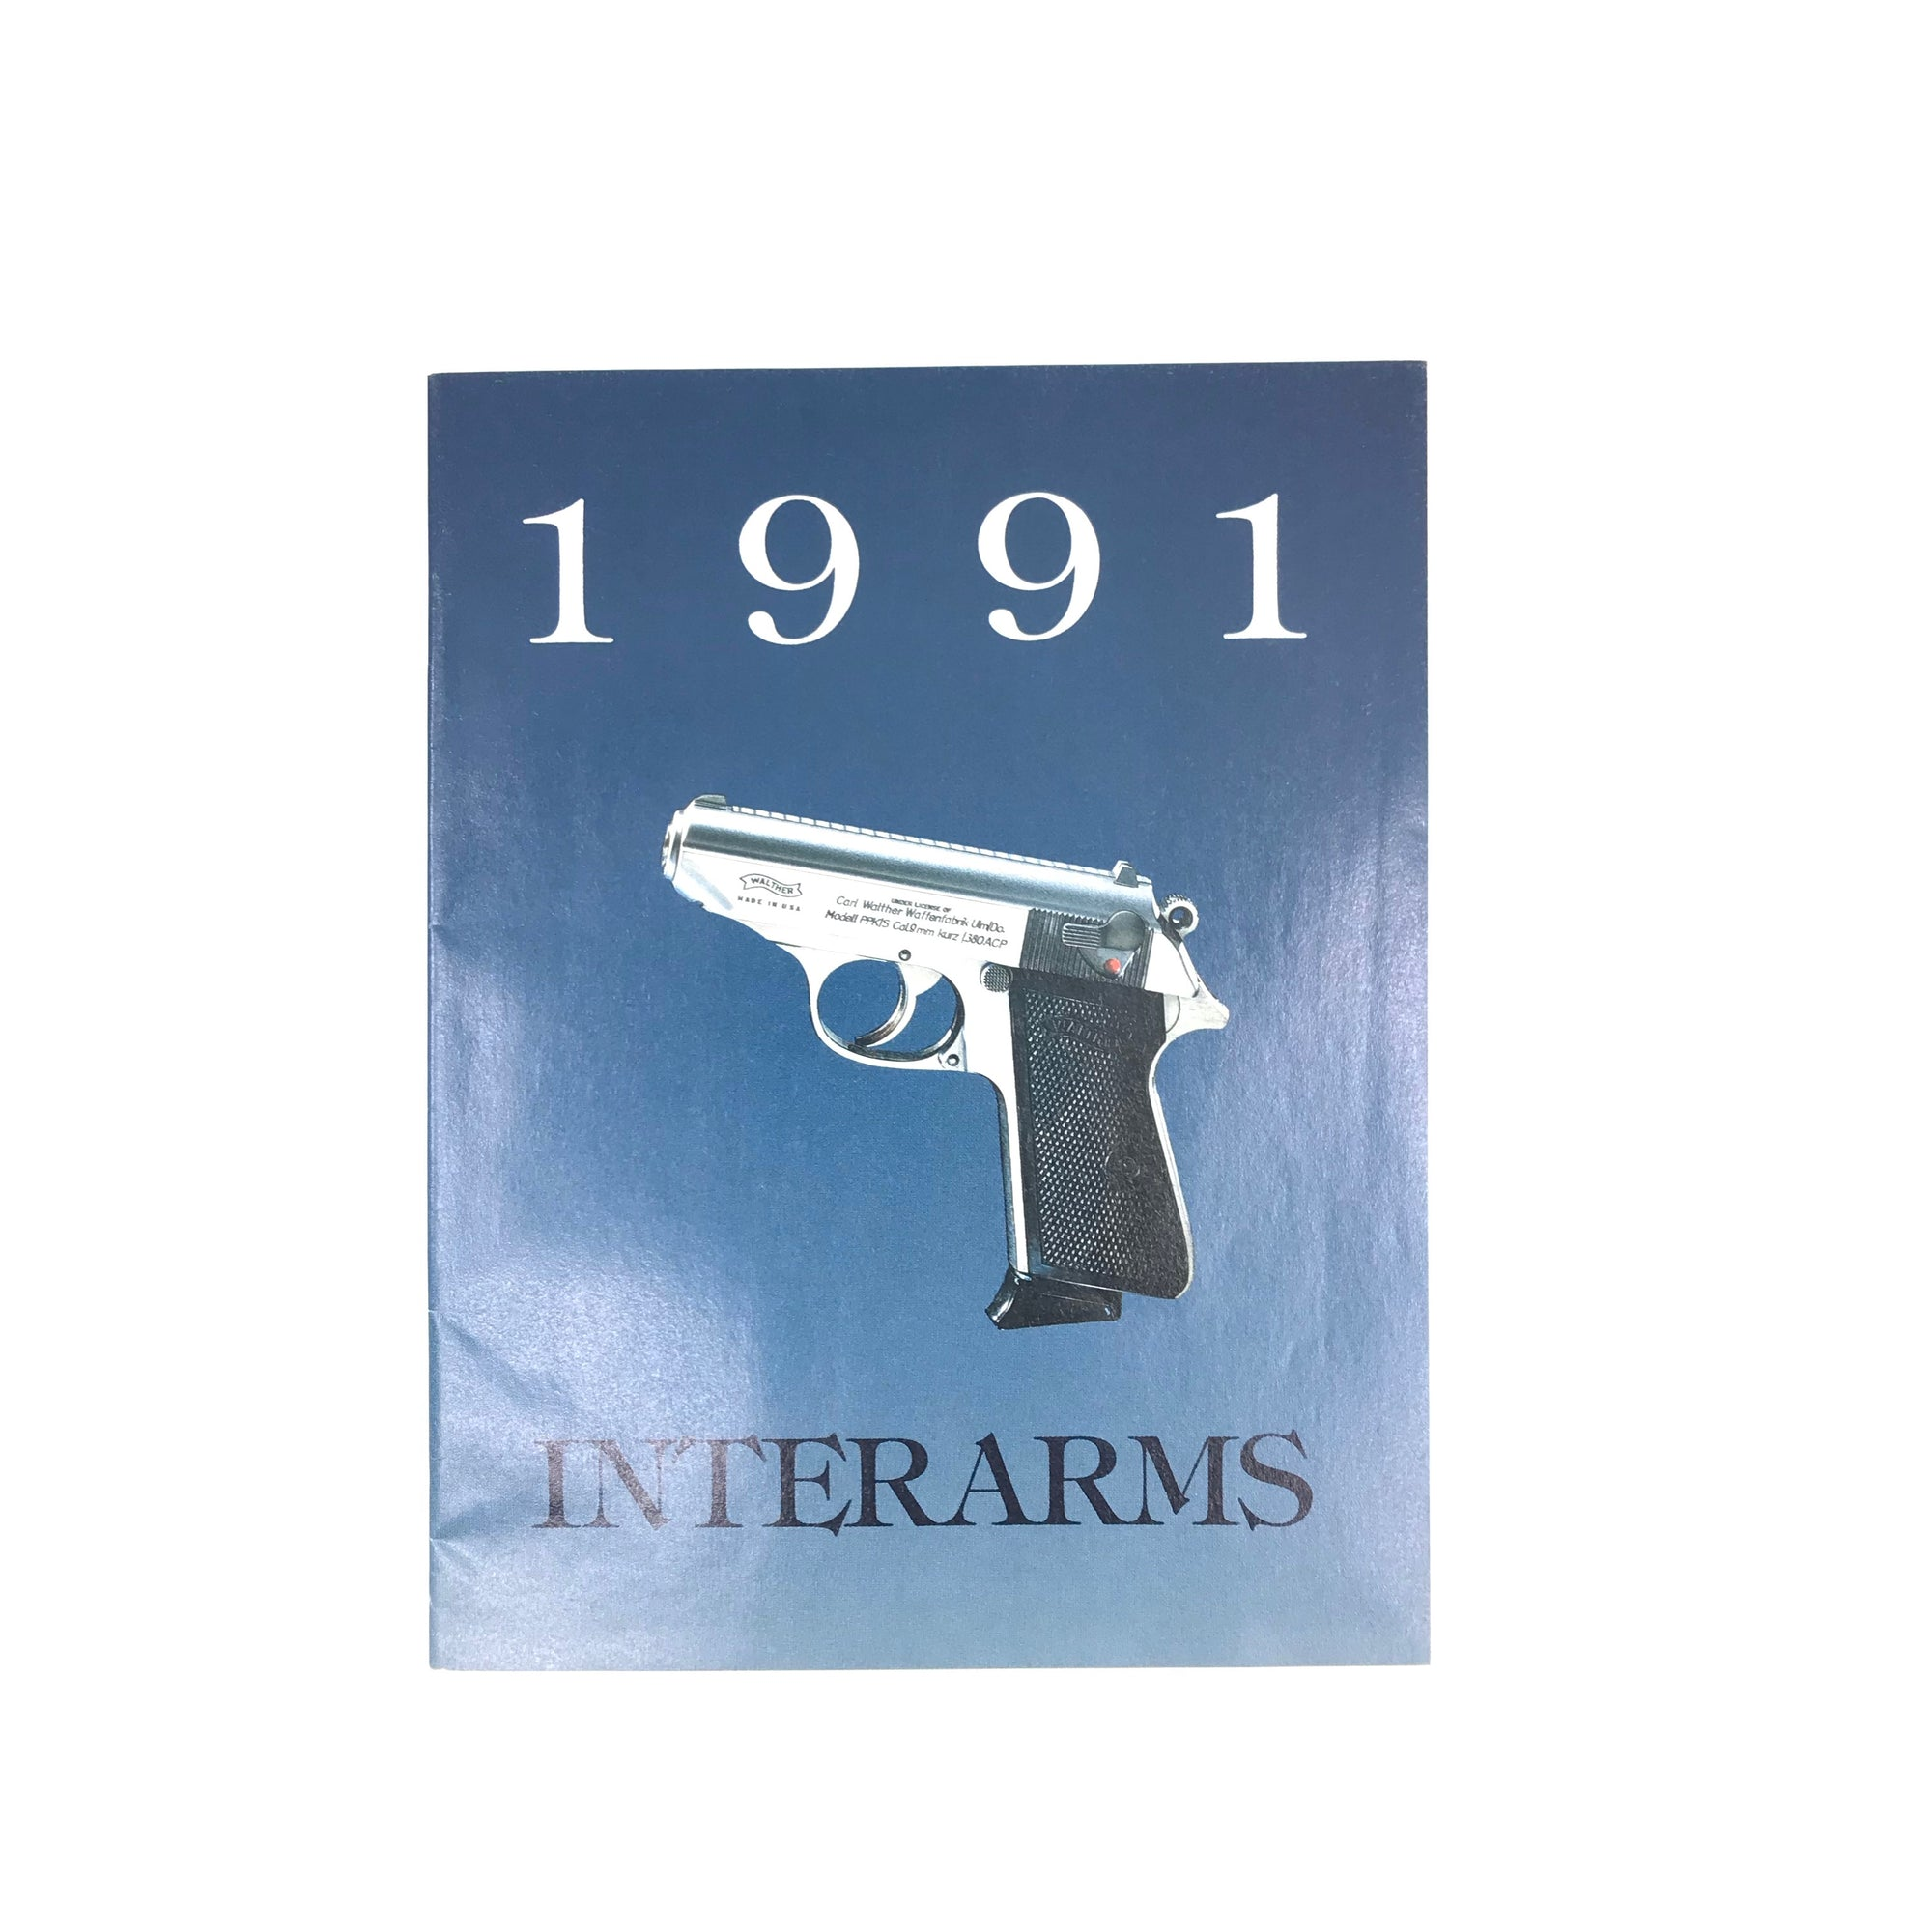 Interarms 1991 Catalogue Smaller